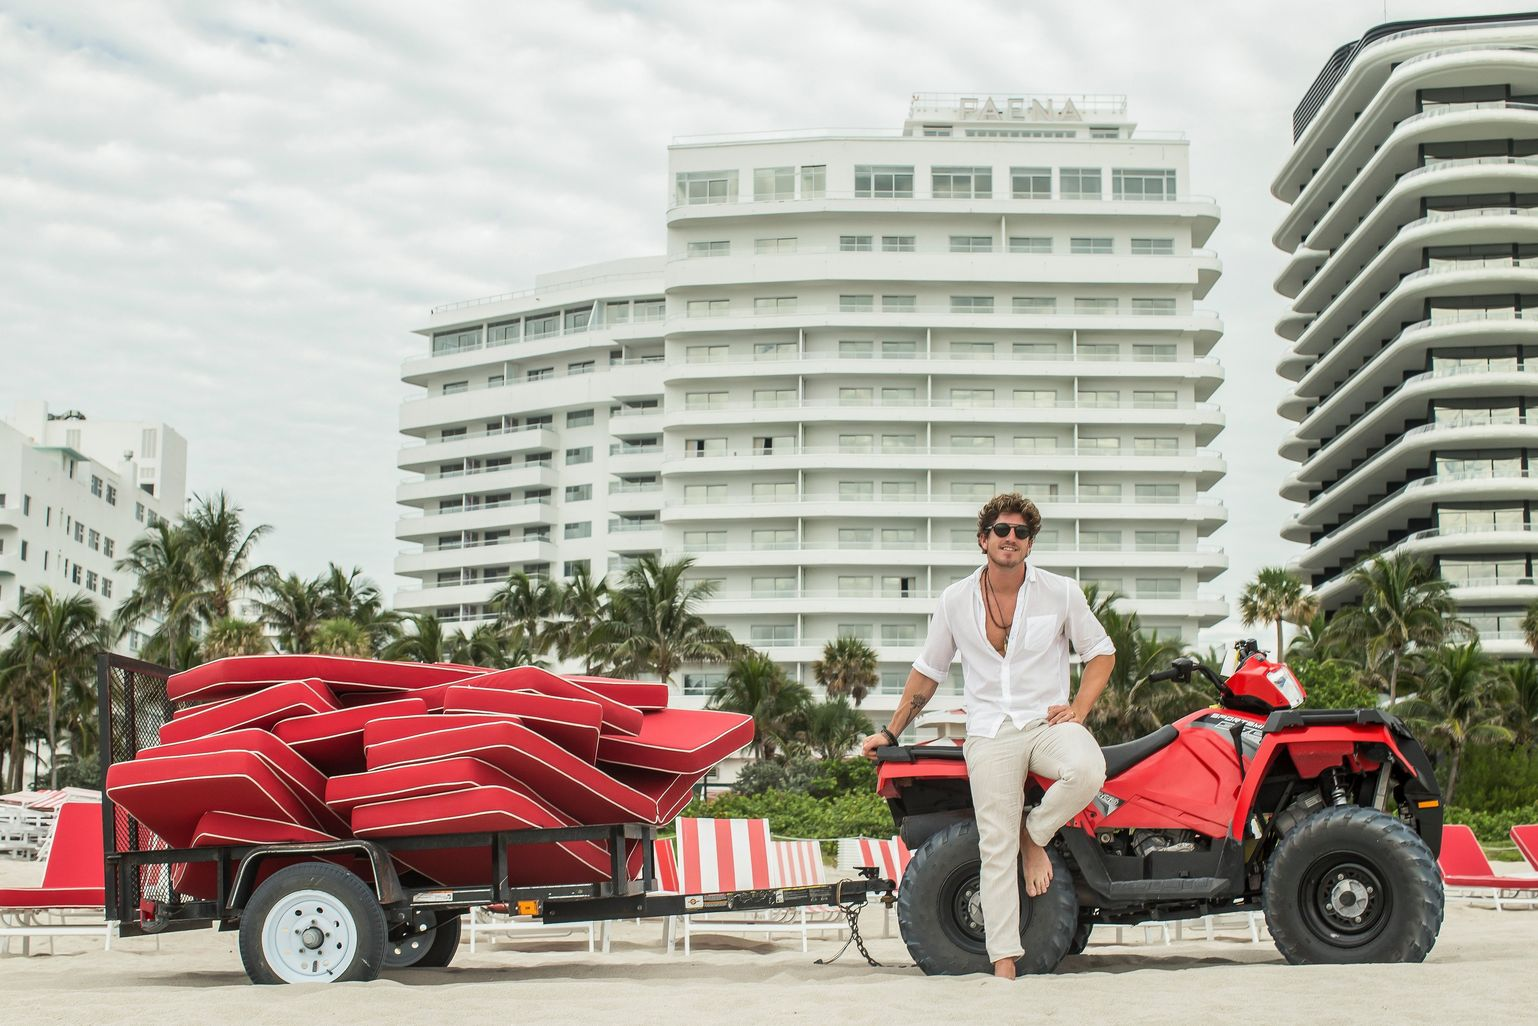 The art director of the Faena Hotel shows us his life in 6 photos